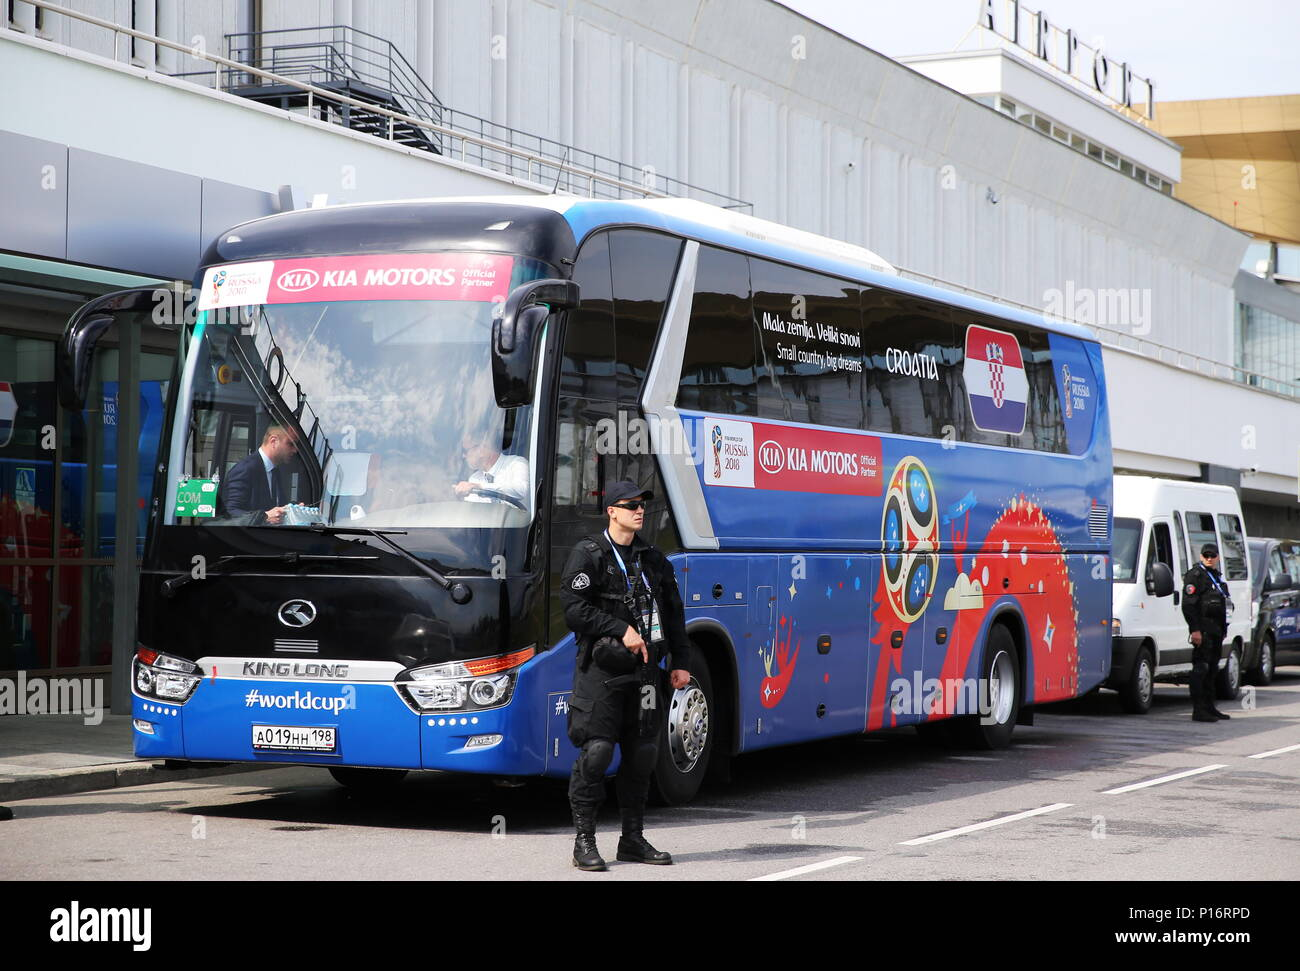 7155f0c56 ST PETERSBURG, RUSSIA - JUNE 11, 2018: A bus of the Croatian men's national  football team players seen at St Petersburg's Pulkovo International Airport  as ...